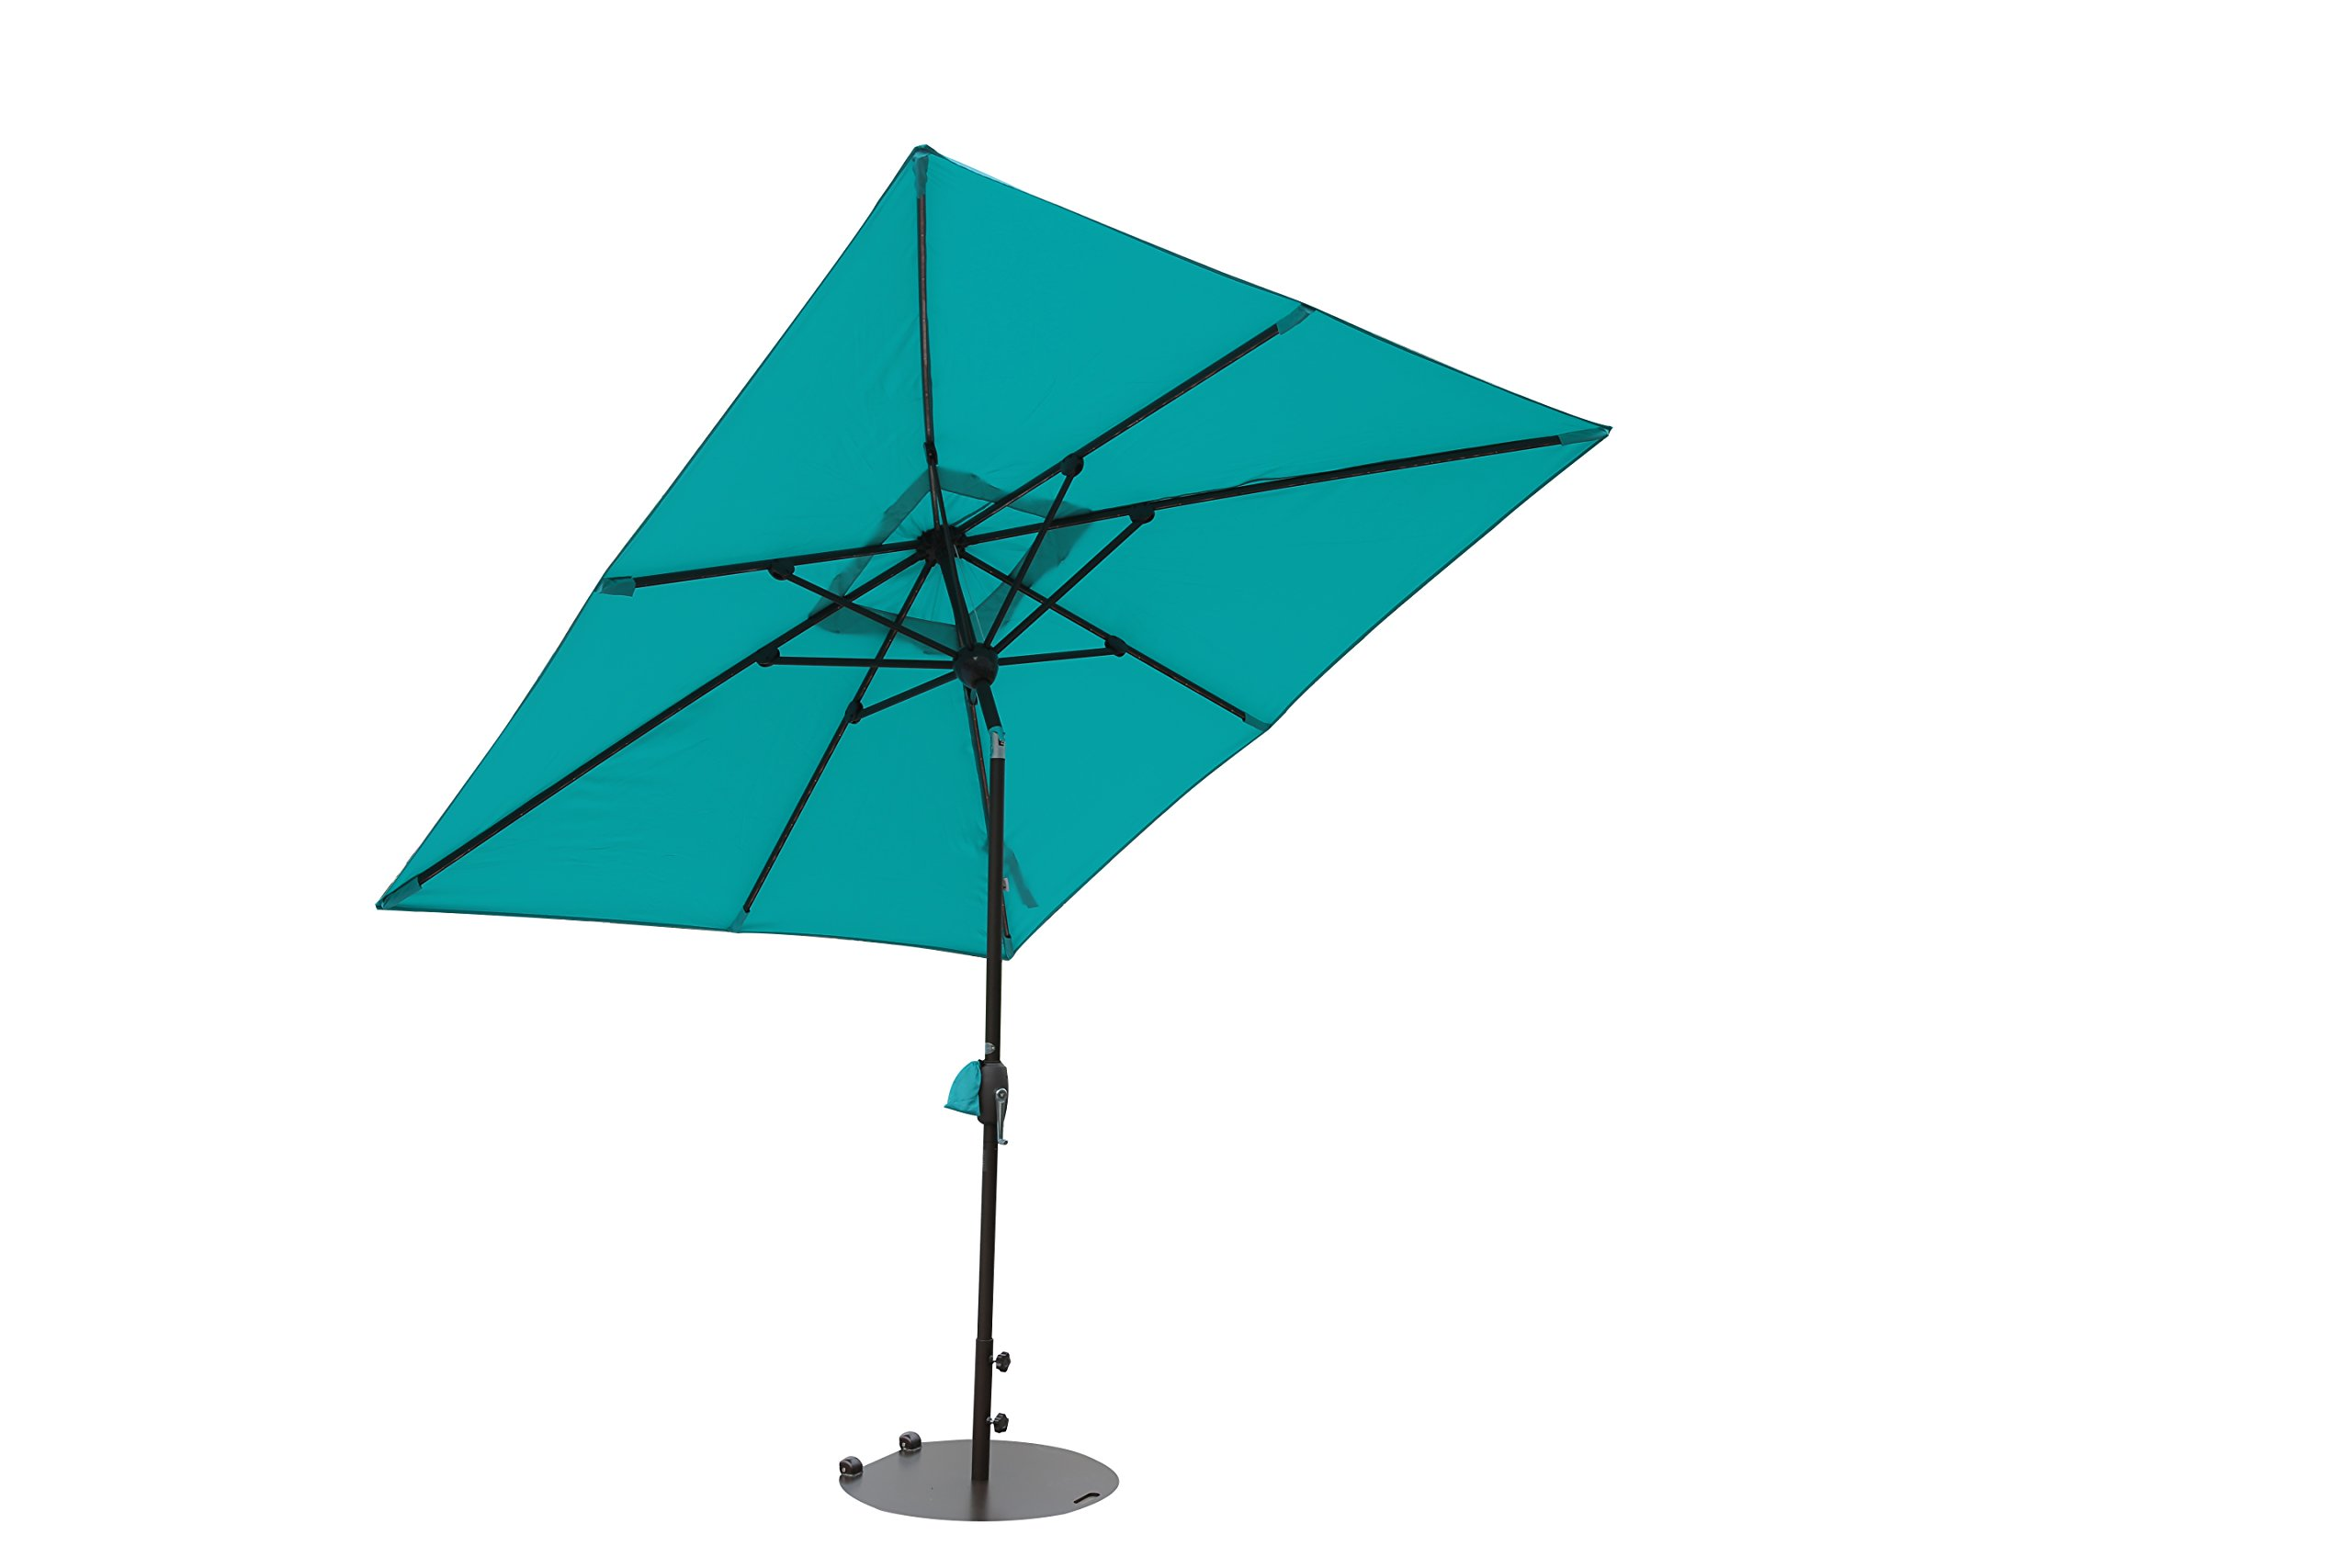 SORARA Patio Umbrella with Solar Powered Rectangular Table Umbrella with Solar Powered 68 LED Lights with Tilt&Crank&Umbrella Cover, 7 by 9 Feet, Turquoise